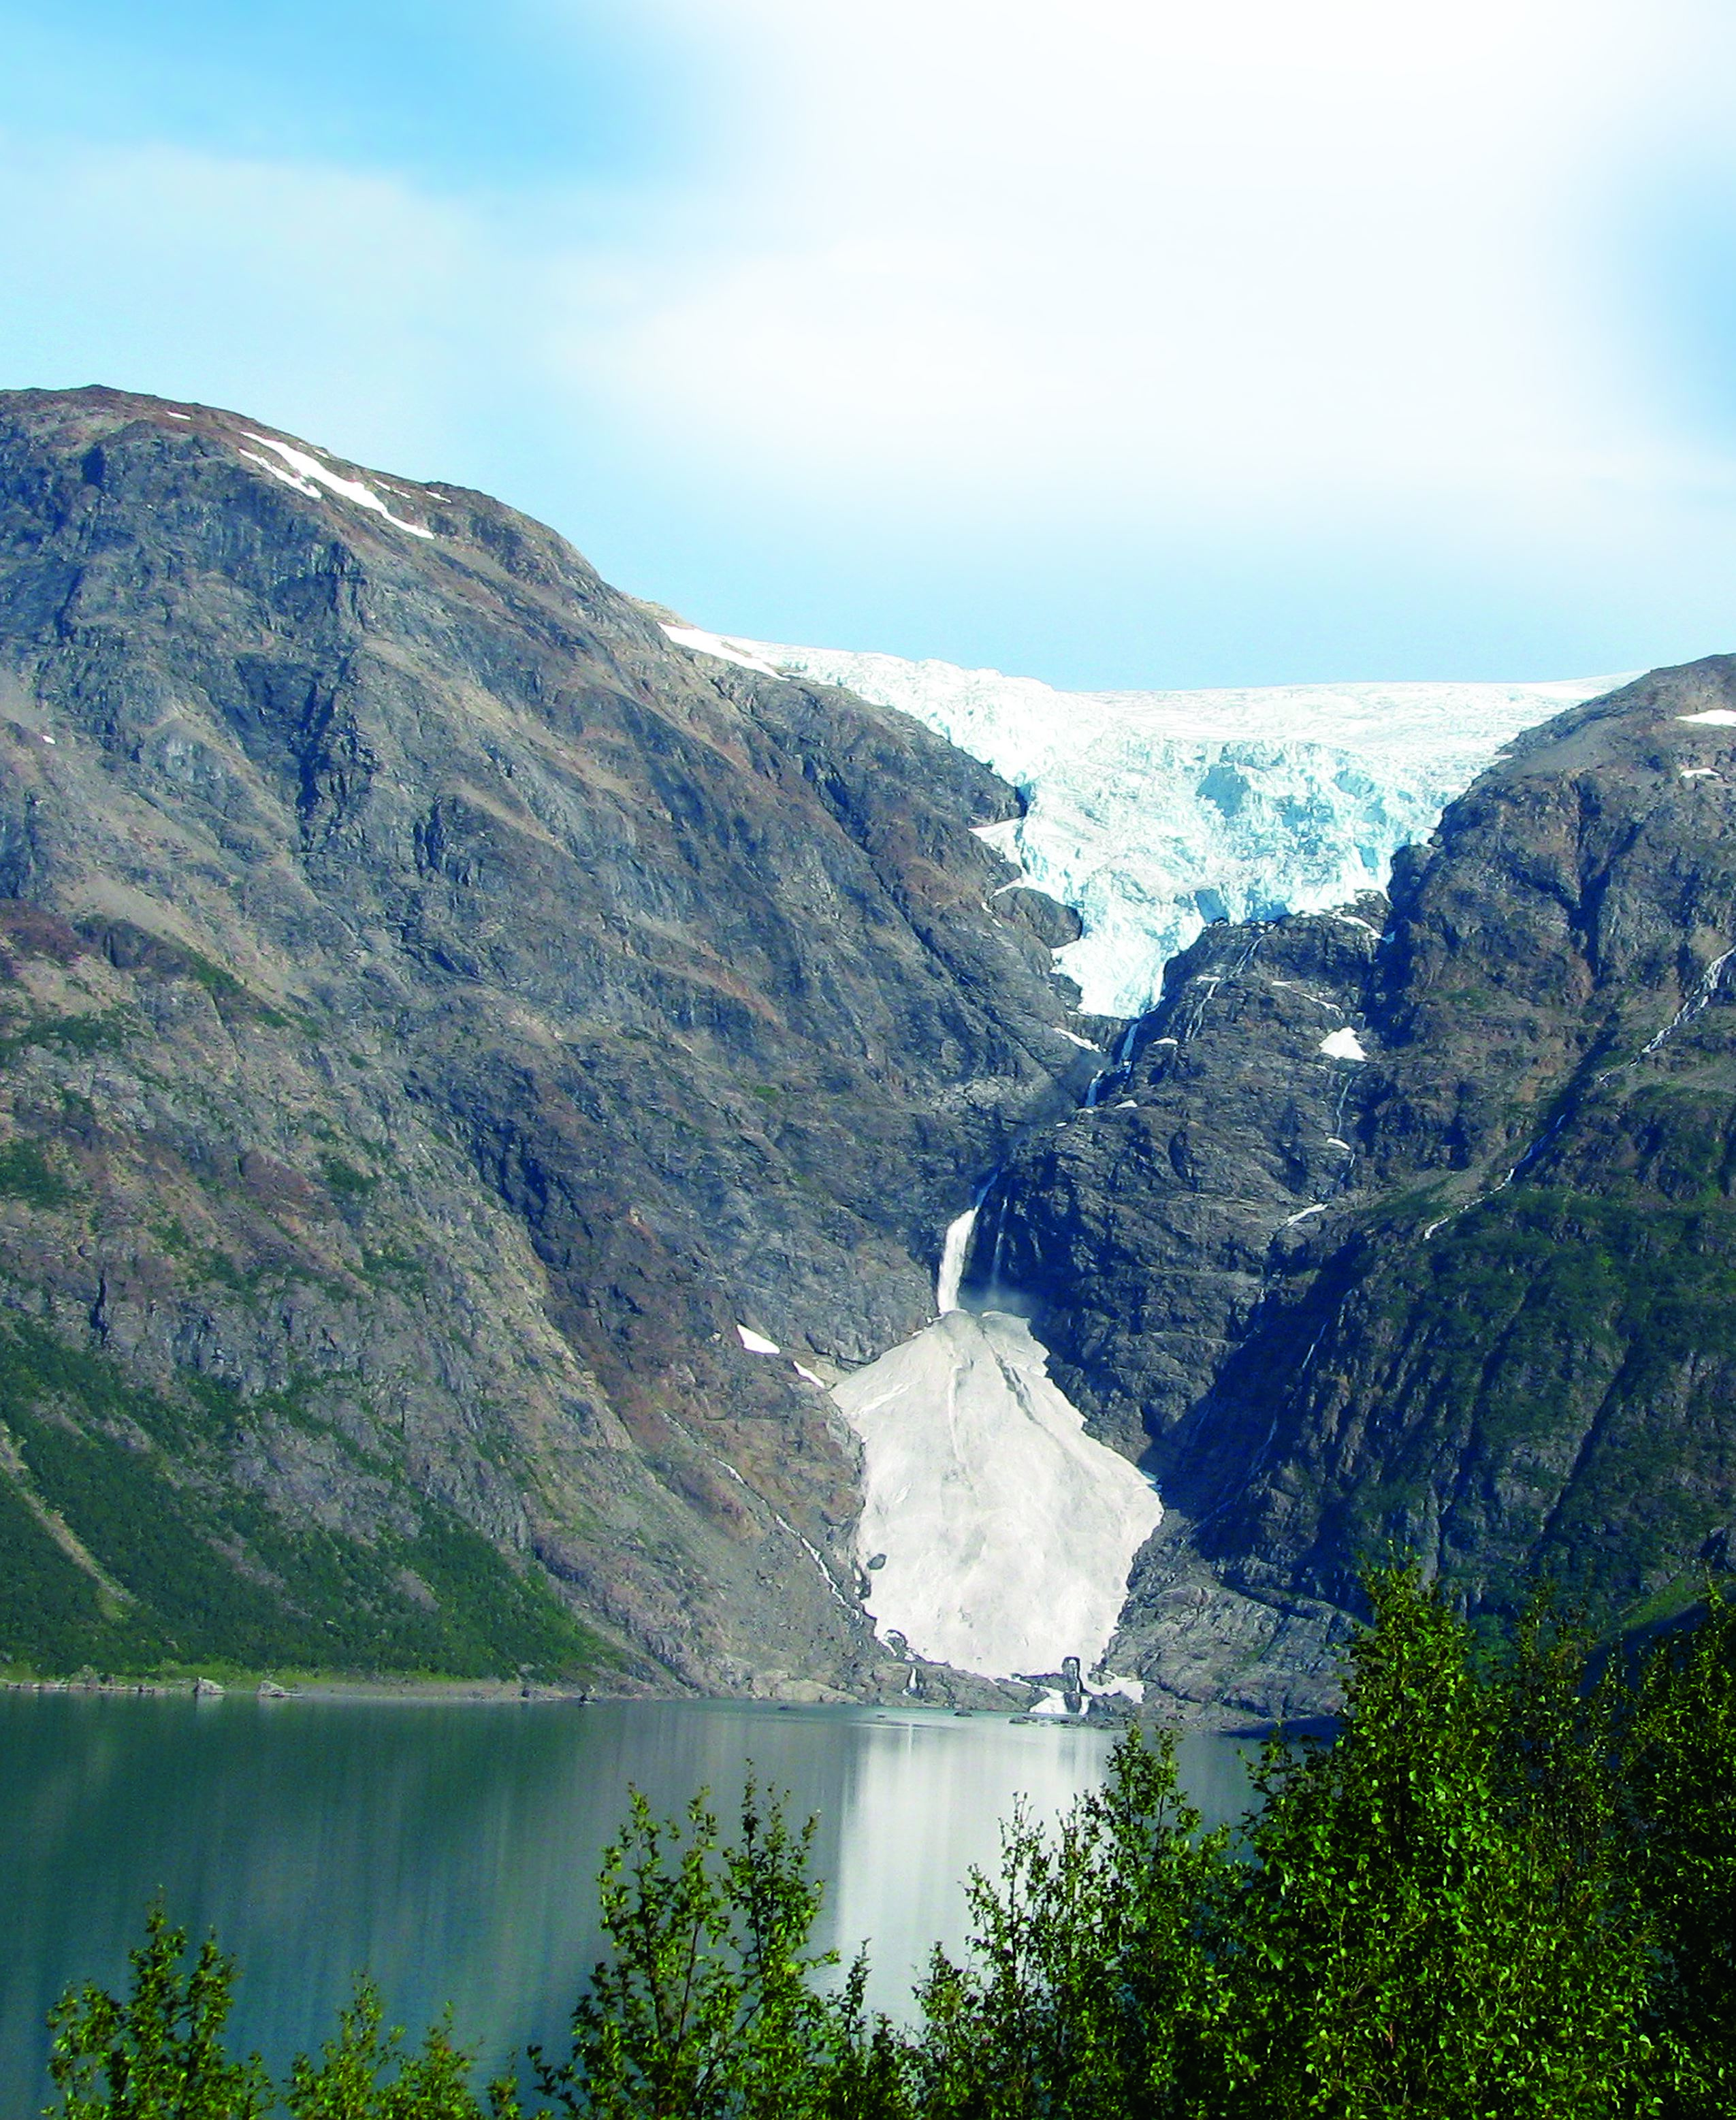 EXPLORE THE ARCTIC—WILDFJORDS AND THE GLACIER